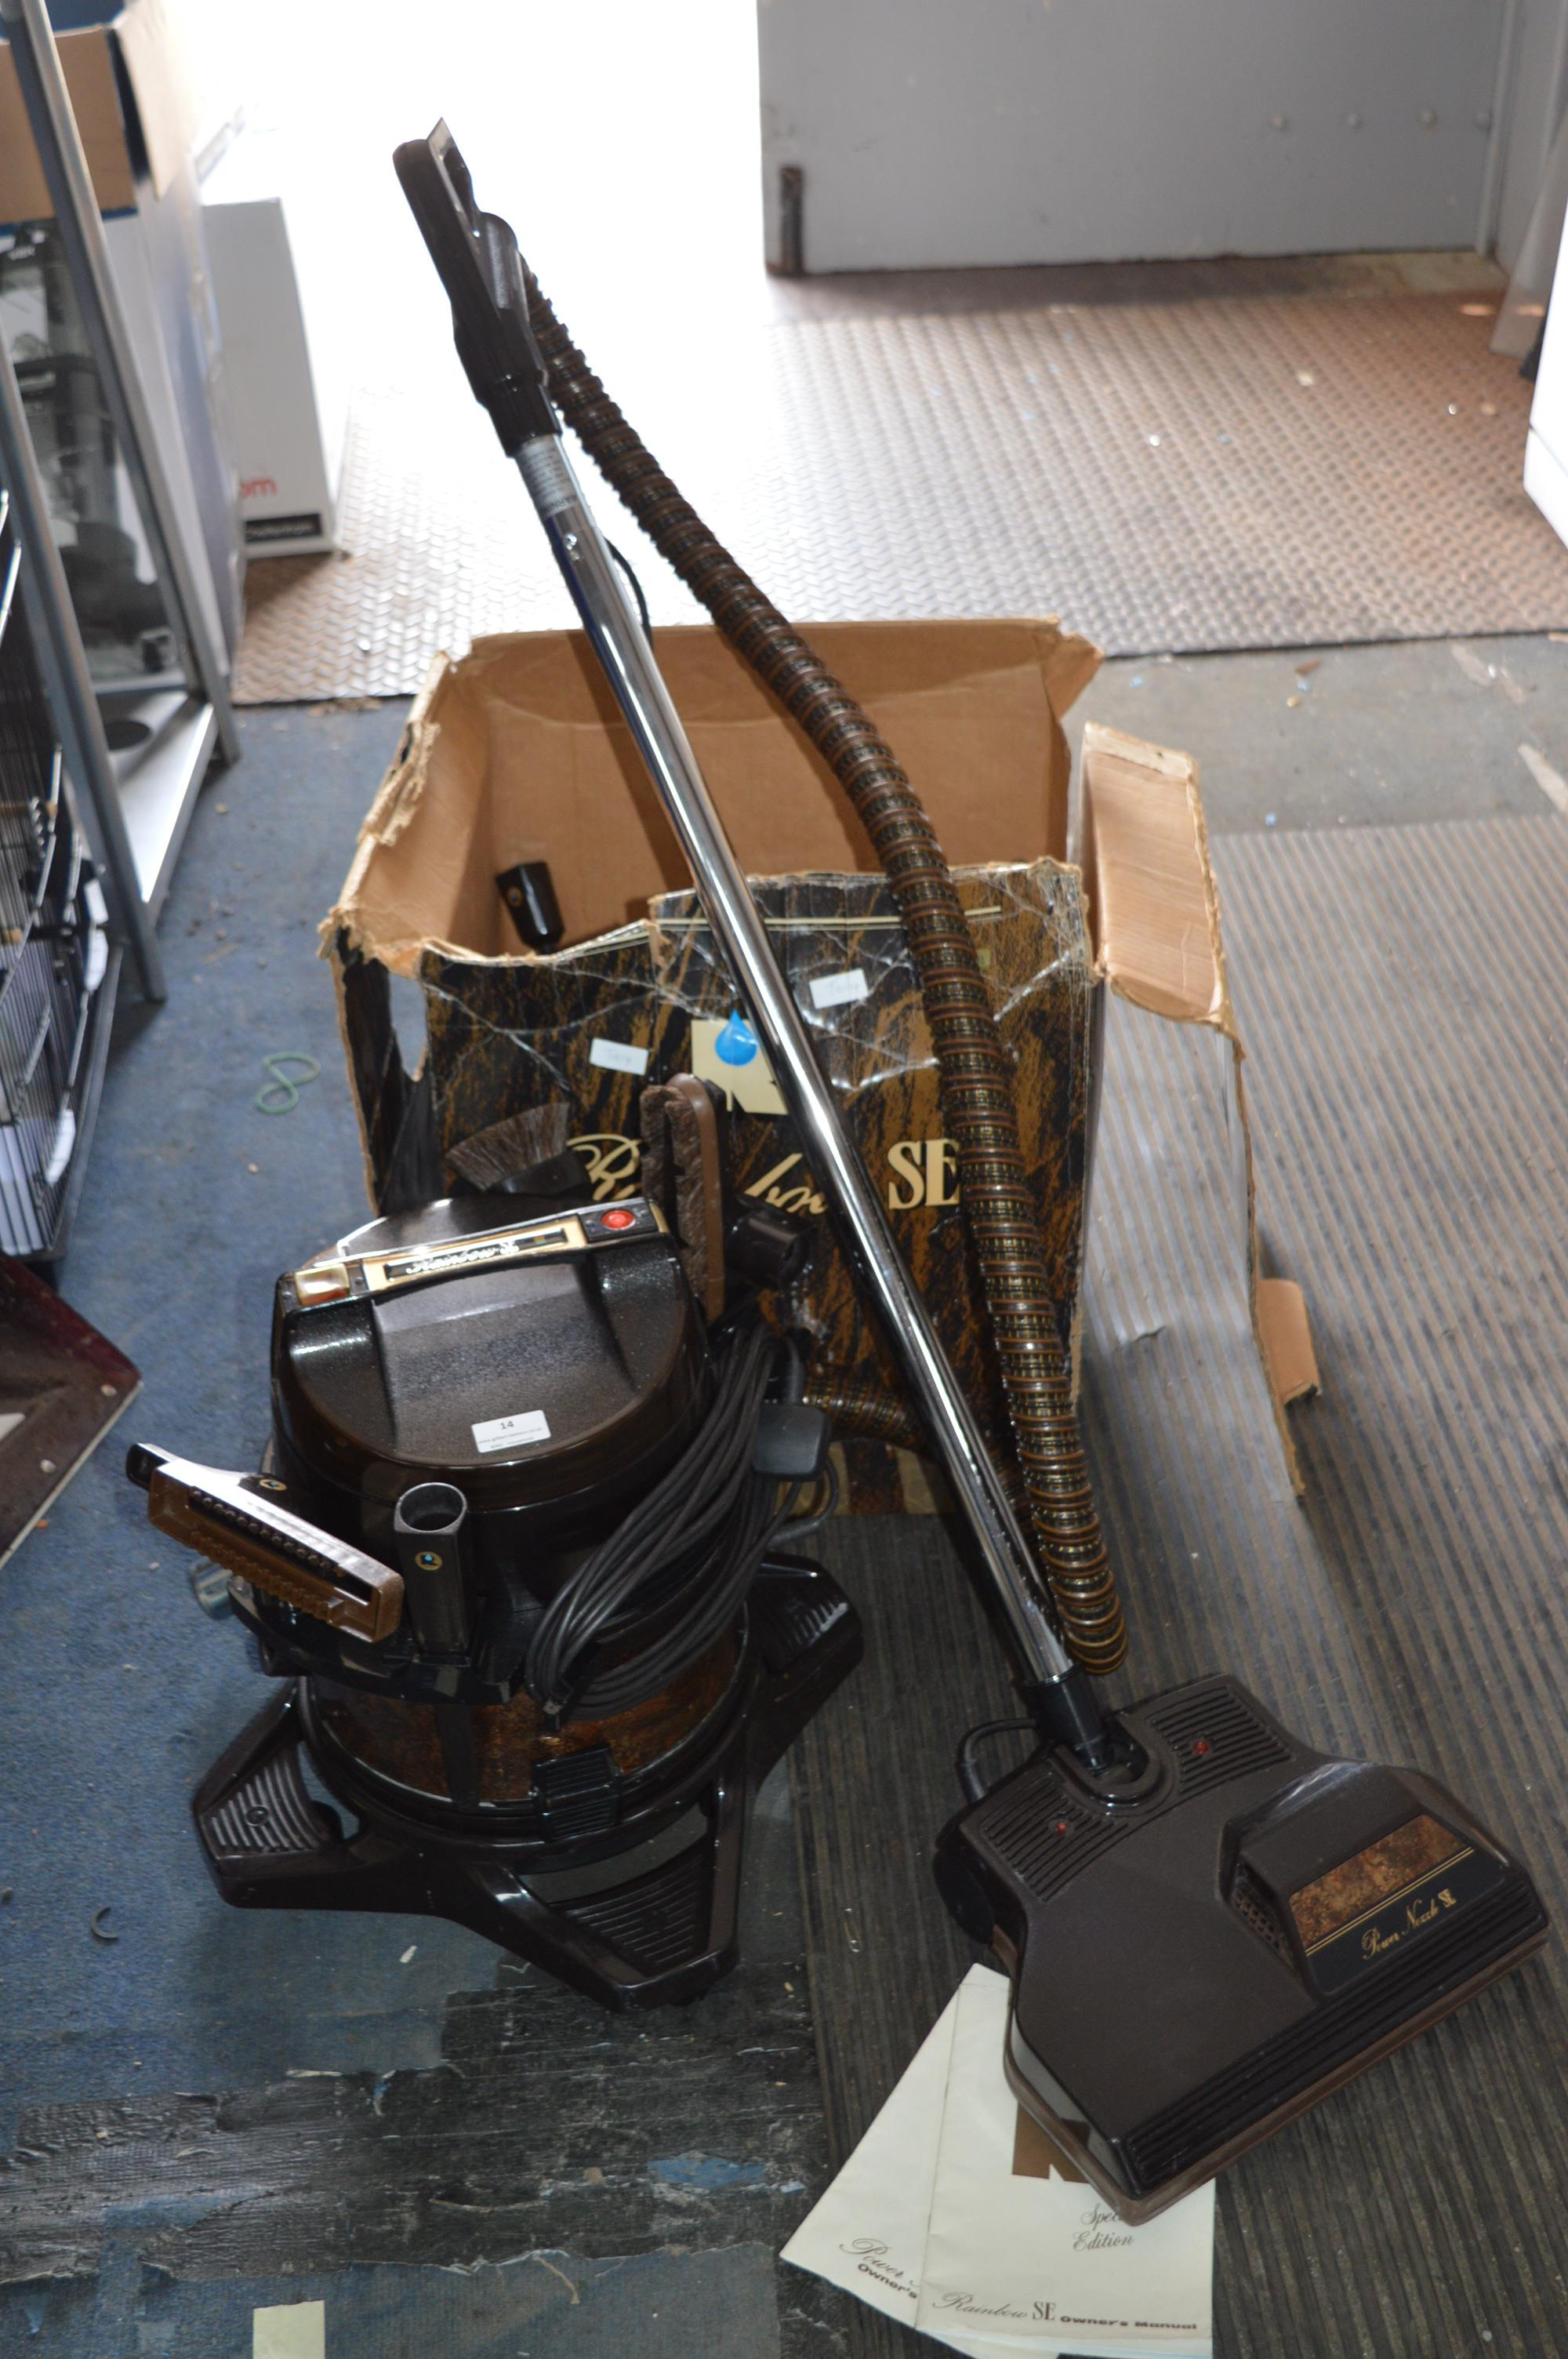 Lot 14 - Rainbow SE Vacuum Cleaner with Accessories (Boxed)